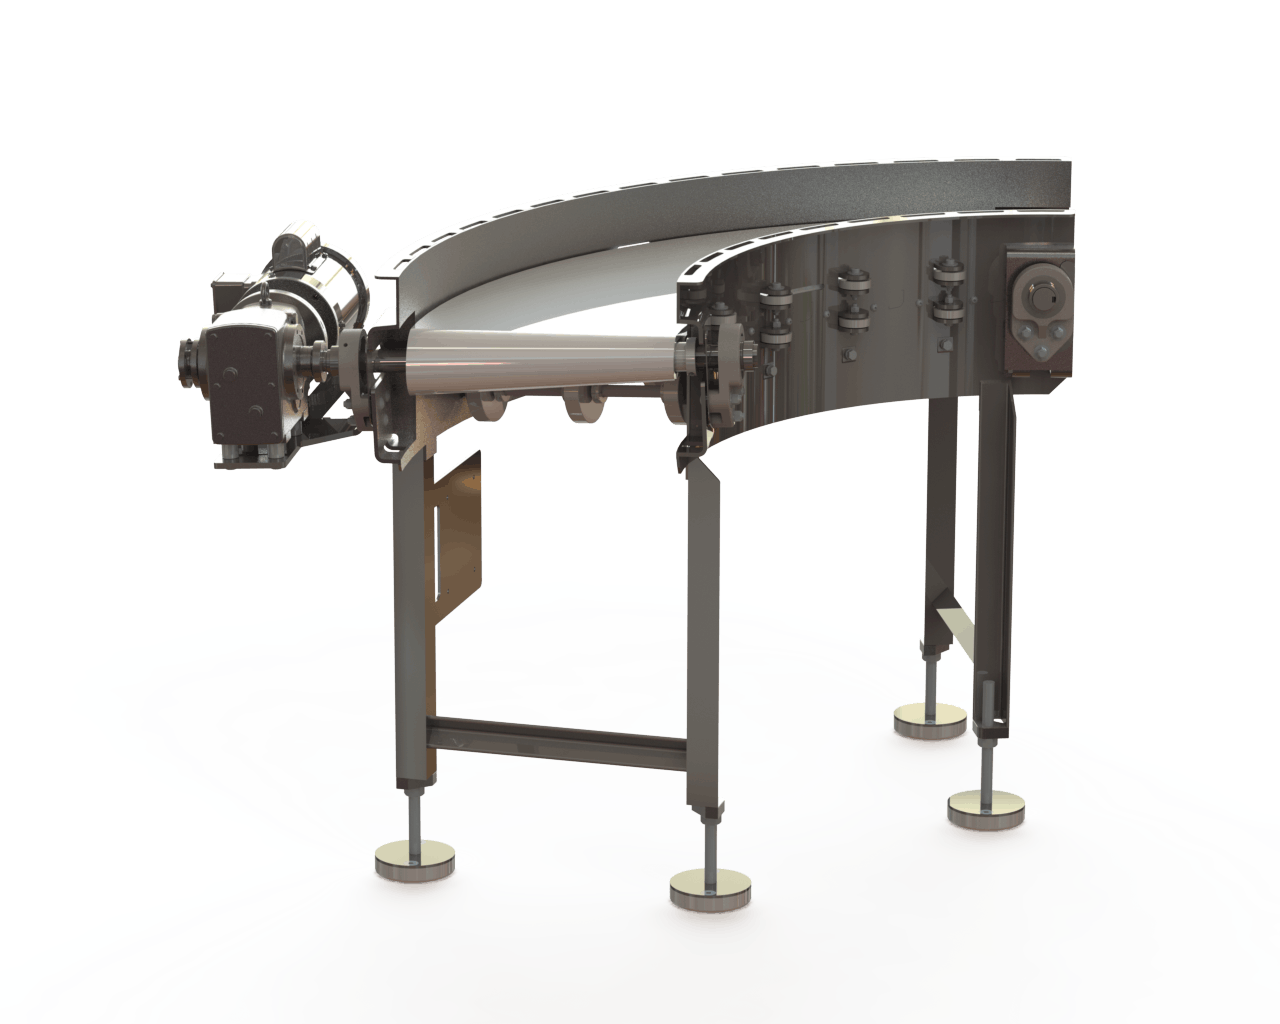 Zero Tangent Radius Conveyor - Zero Tangent Radius Conveyor - sold by Fusion Tech Integrated Inc.